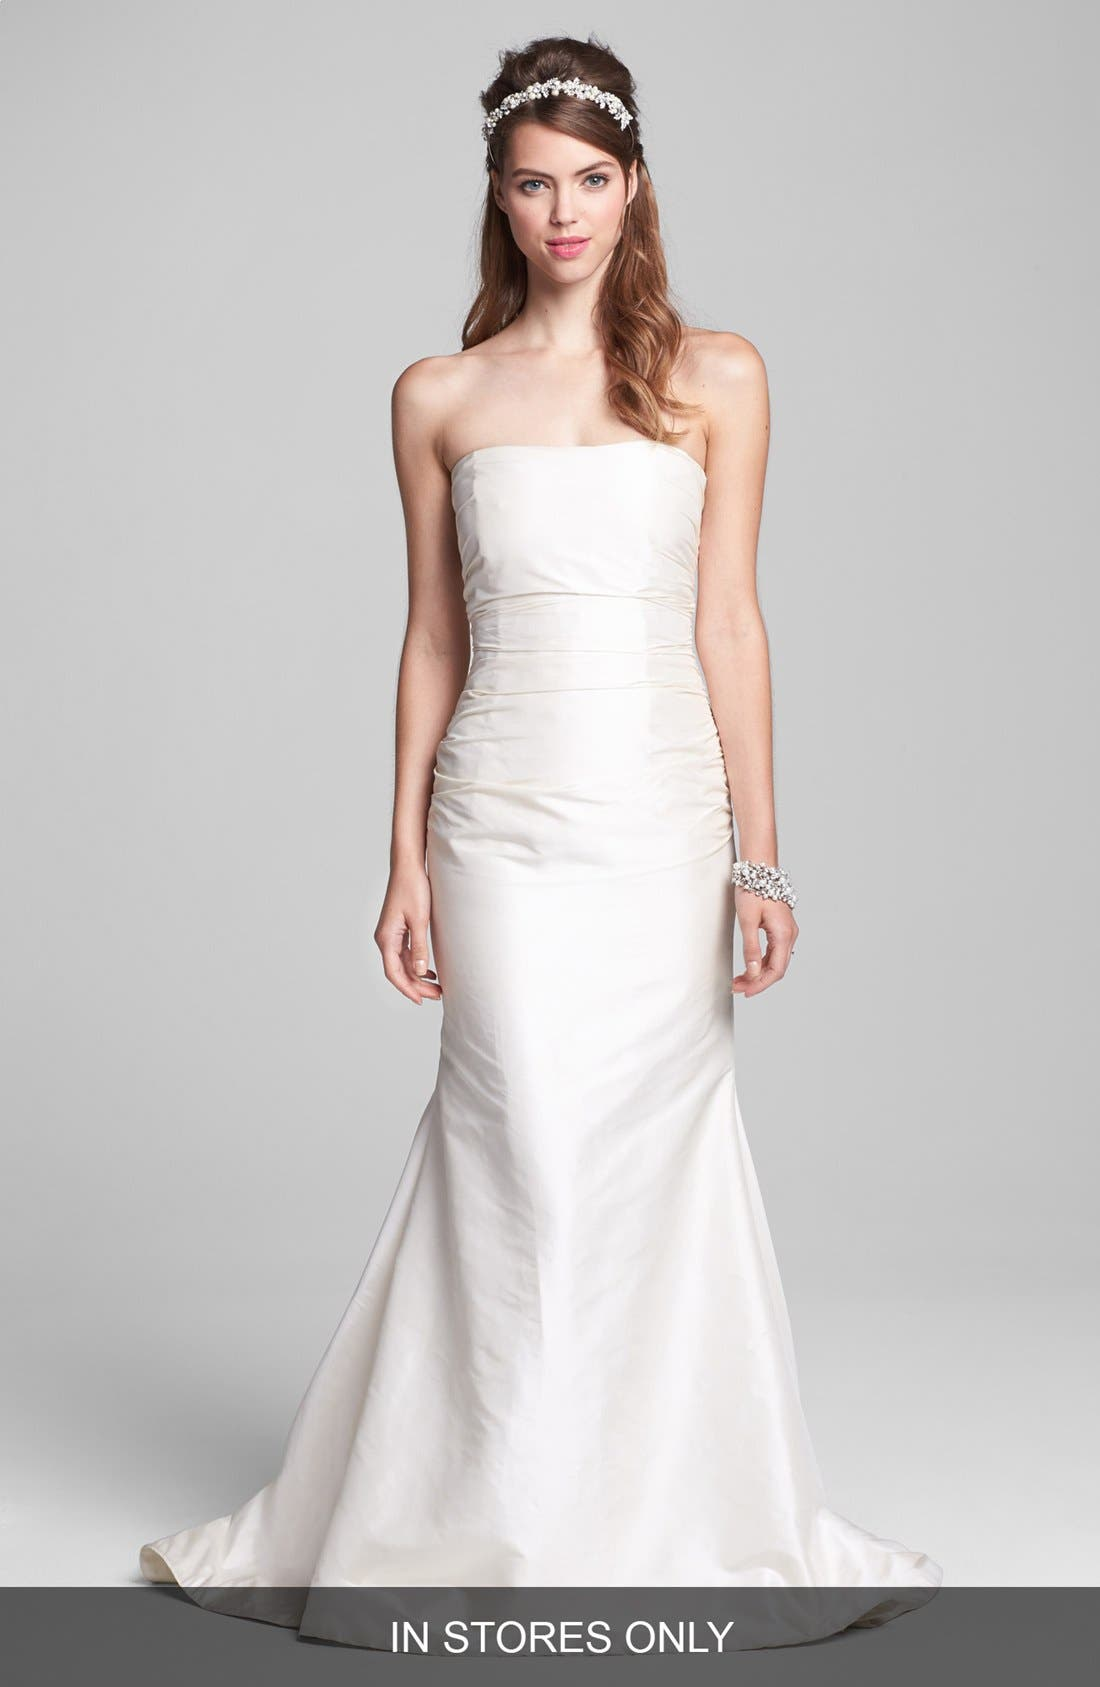 Alternate Image 1 Selected - Caroline DeVillo 'Abigail' Silk Shantung Mermaid Gown (In Stores Only)